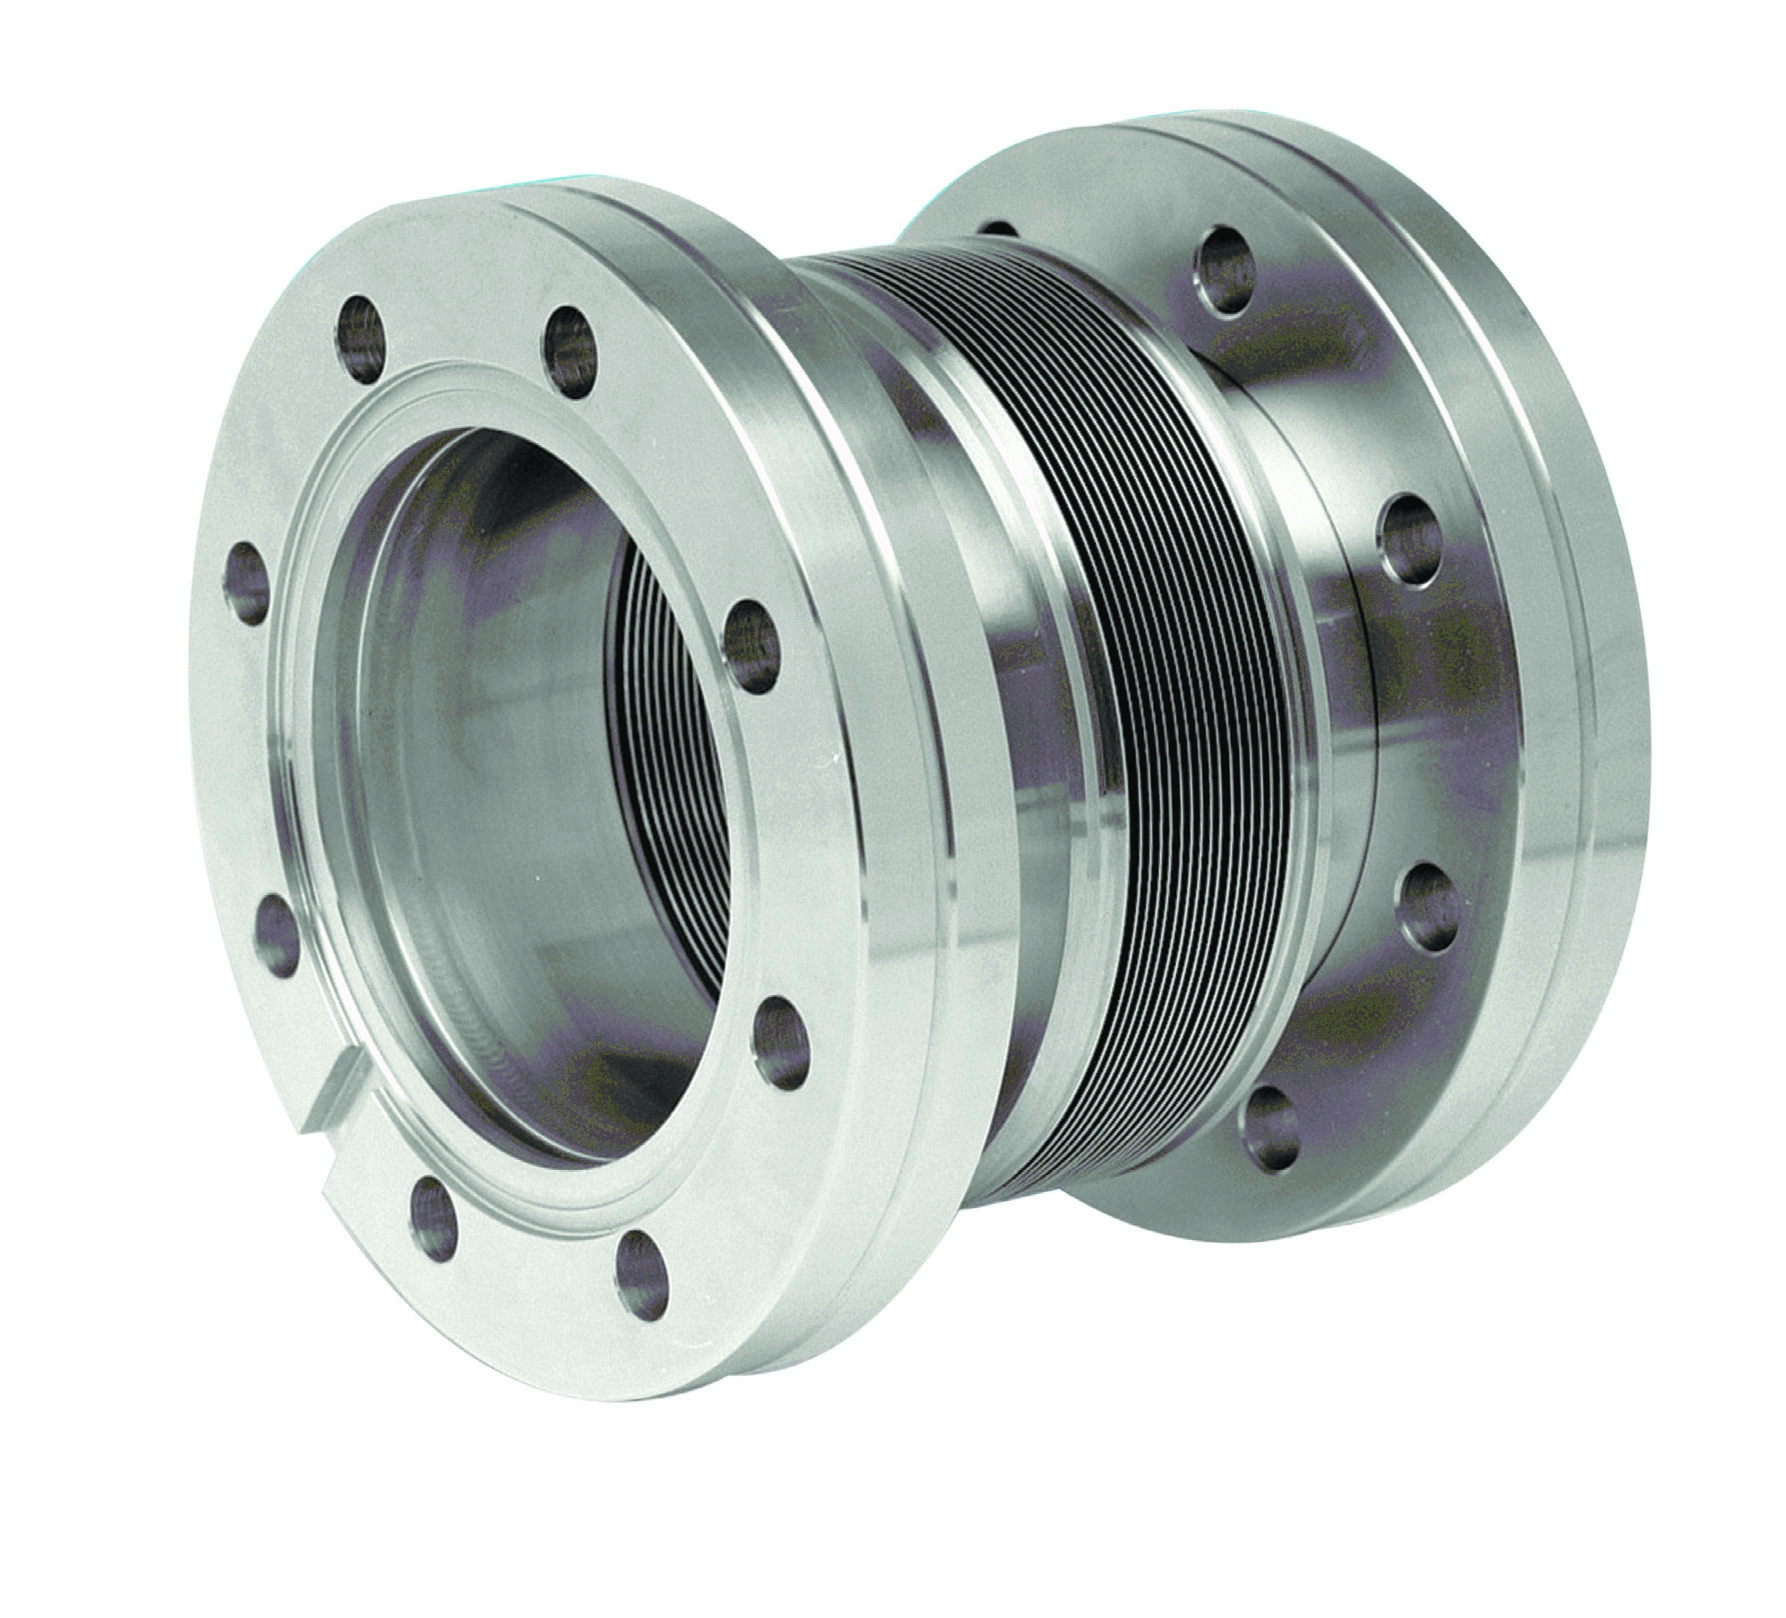 Edge welded bellow with DN150CF flanges, L = 93 - 143mm